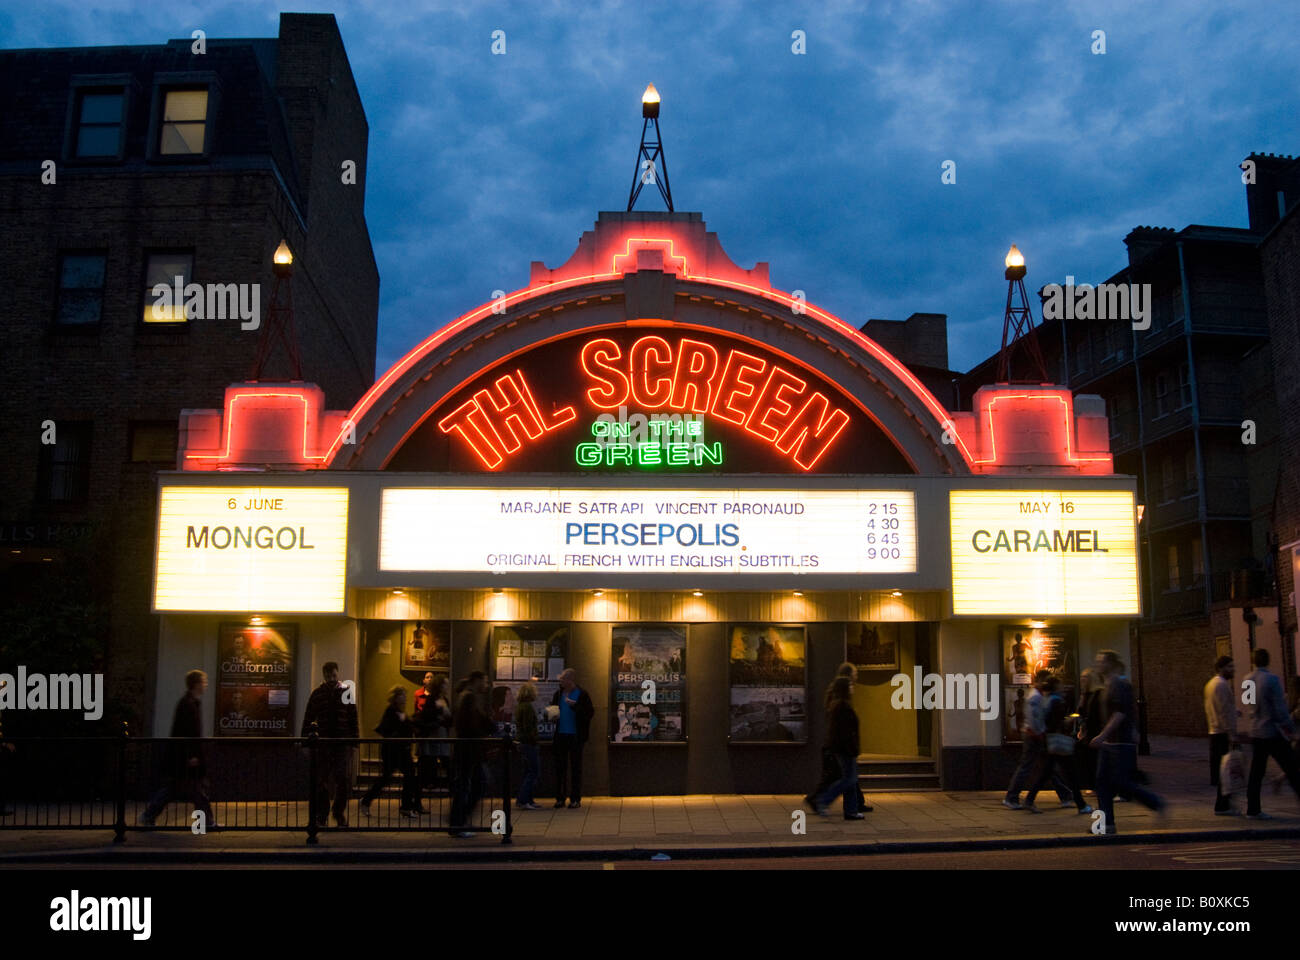 The Screen on the Green cinema on Upper Street, Islington, London England UK - Stock Image